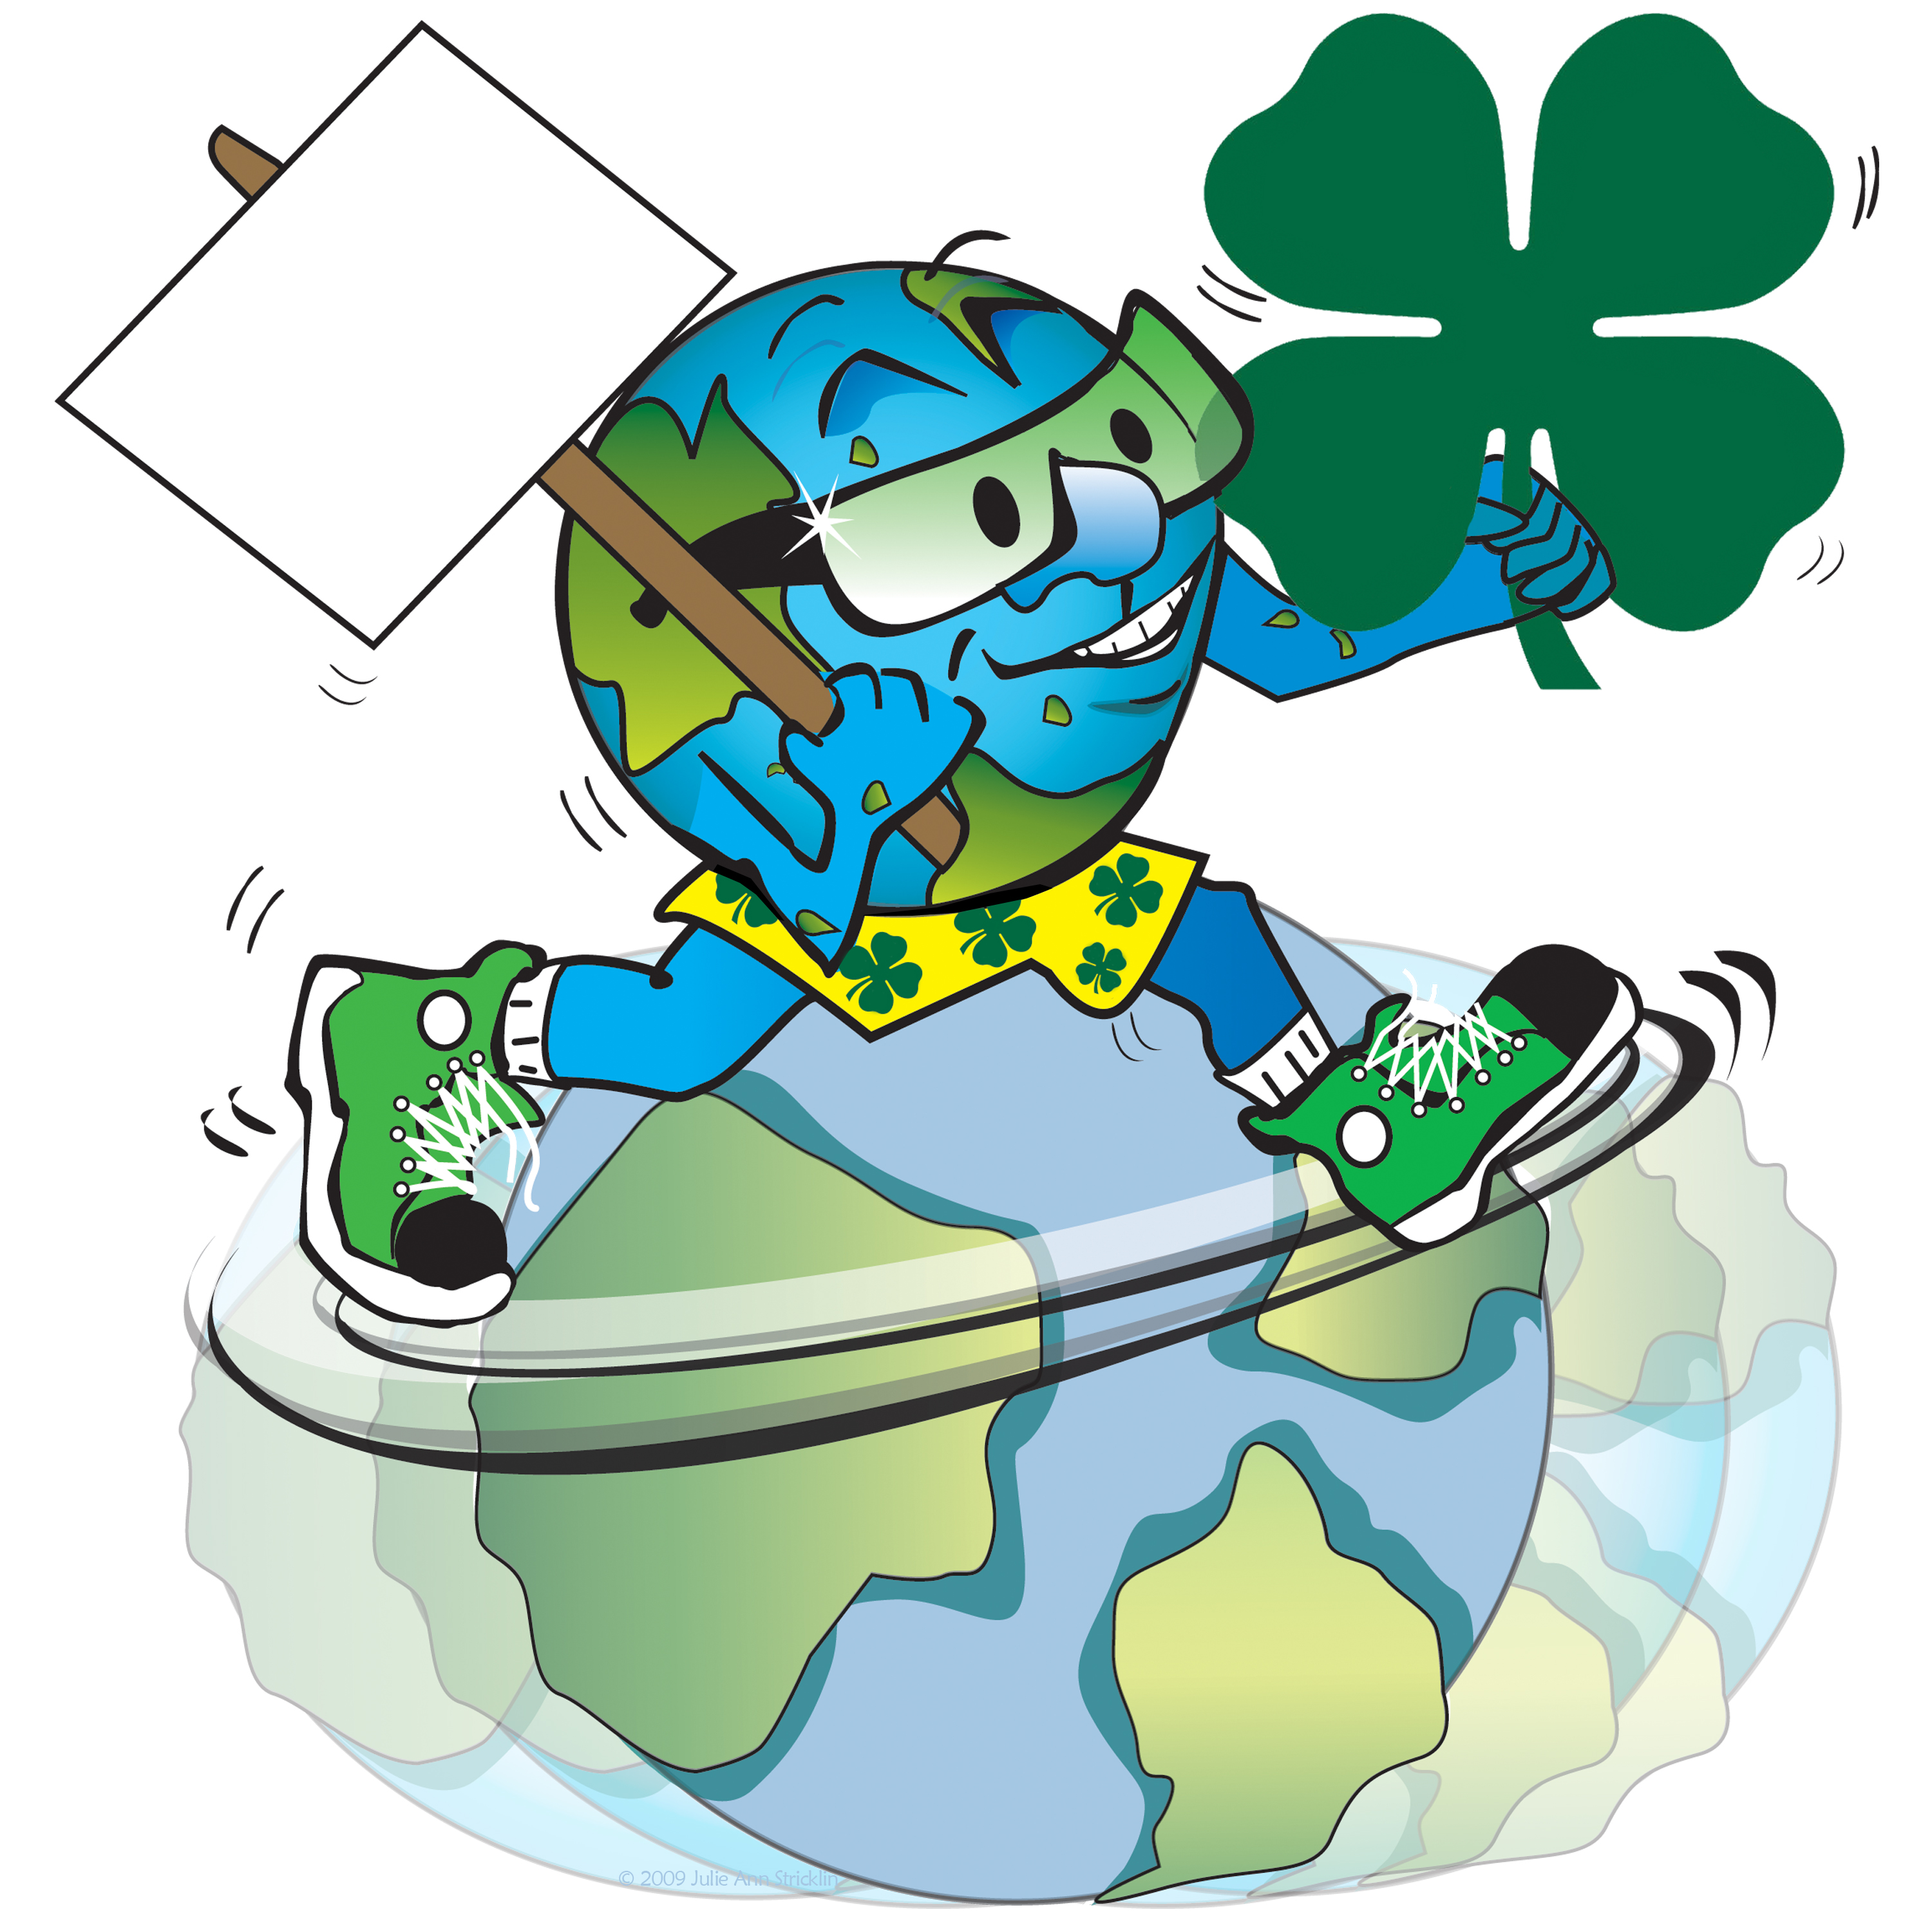 download st patricks day clip art free clipart of leprachauns rh culinaryschools org free animated st patricks day clipart